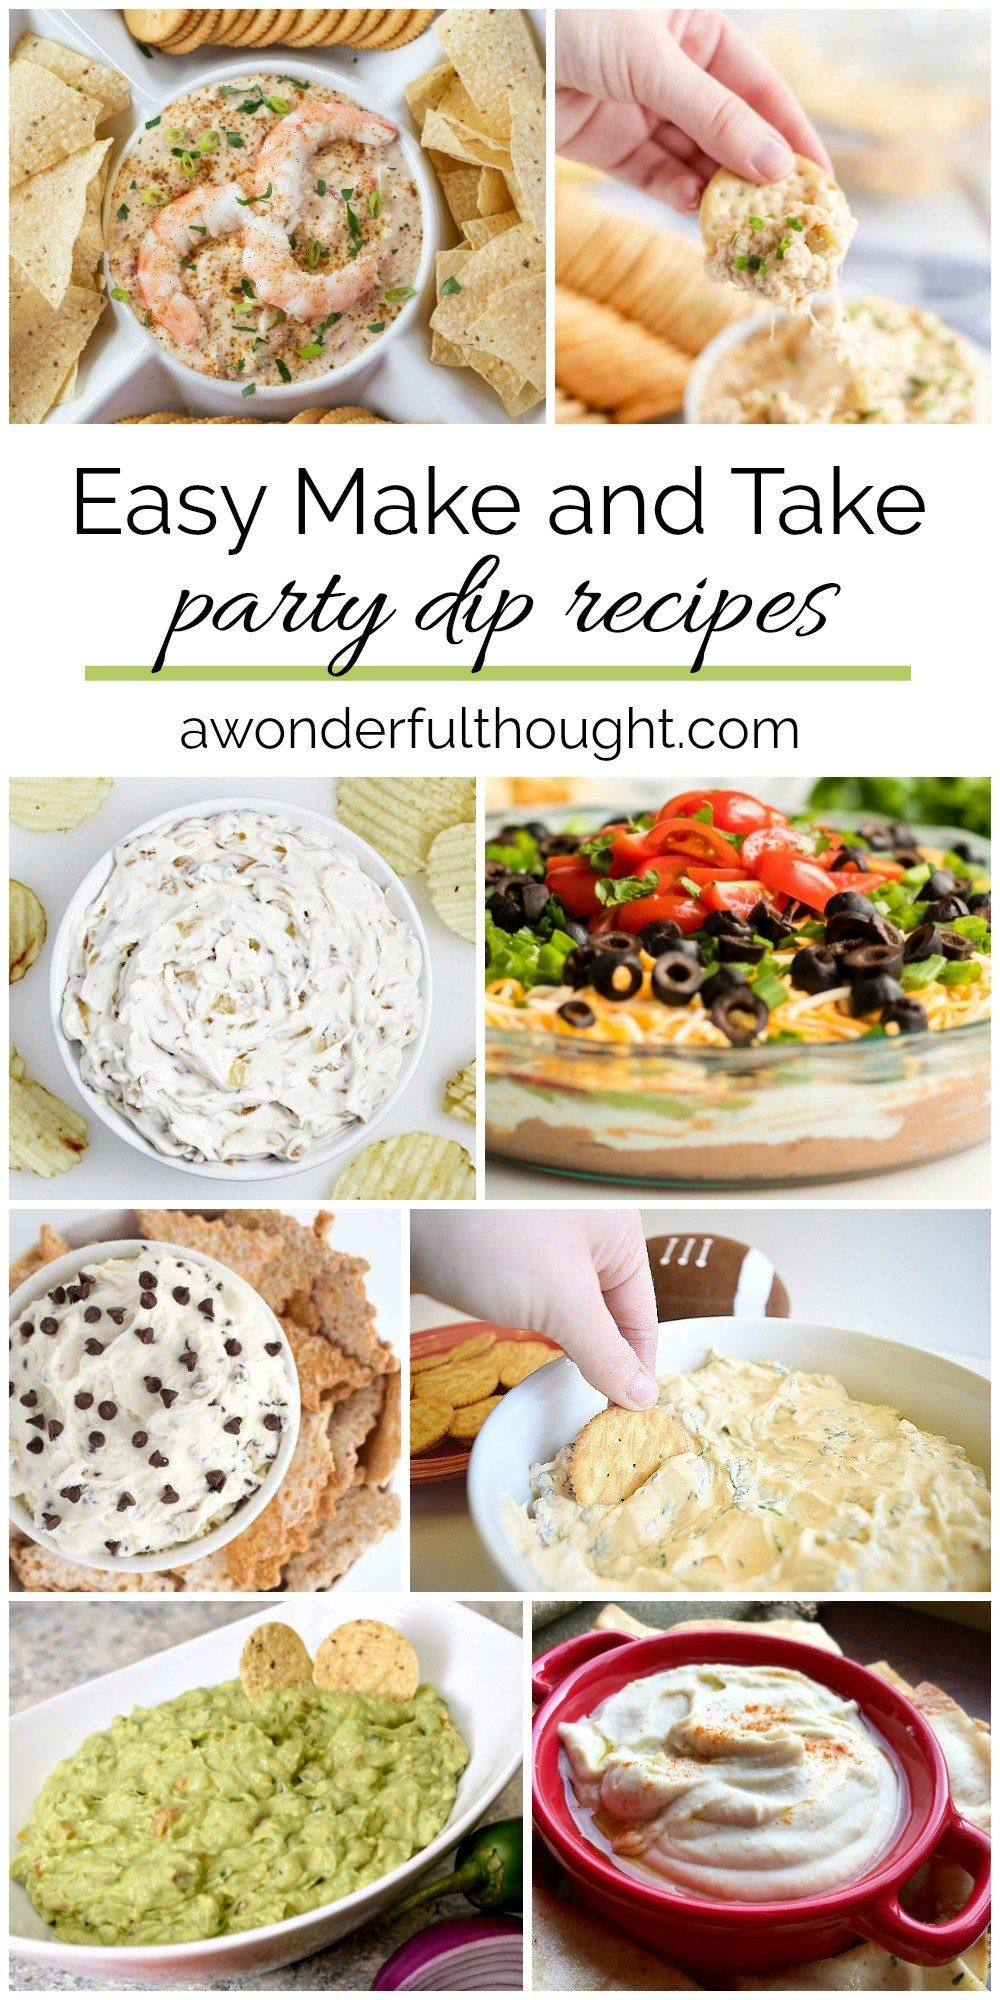 Abendessen Party Easy Make And Take Party Dip Recipes - A Wonderful Thought | Party Dip Recipes, Dip Recipes, Party Dips